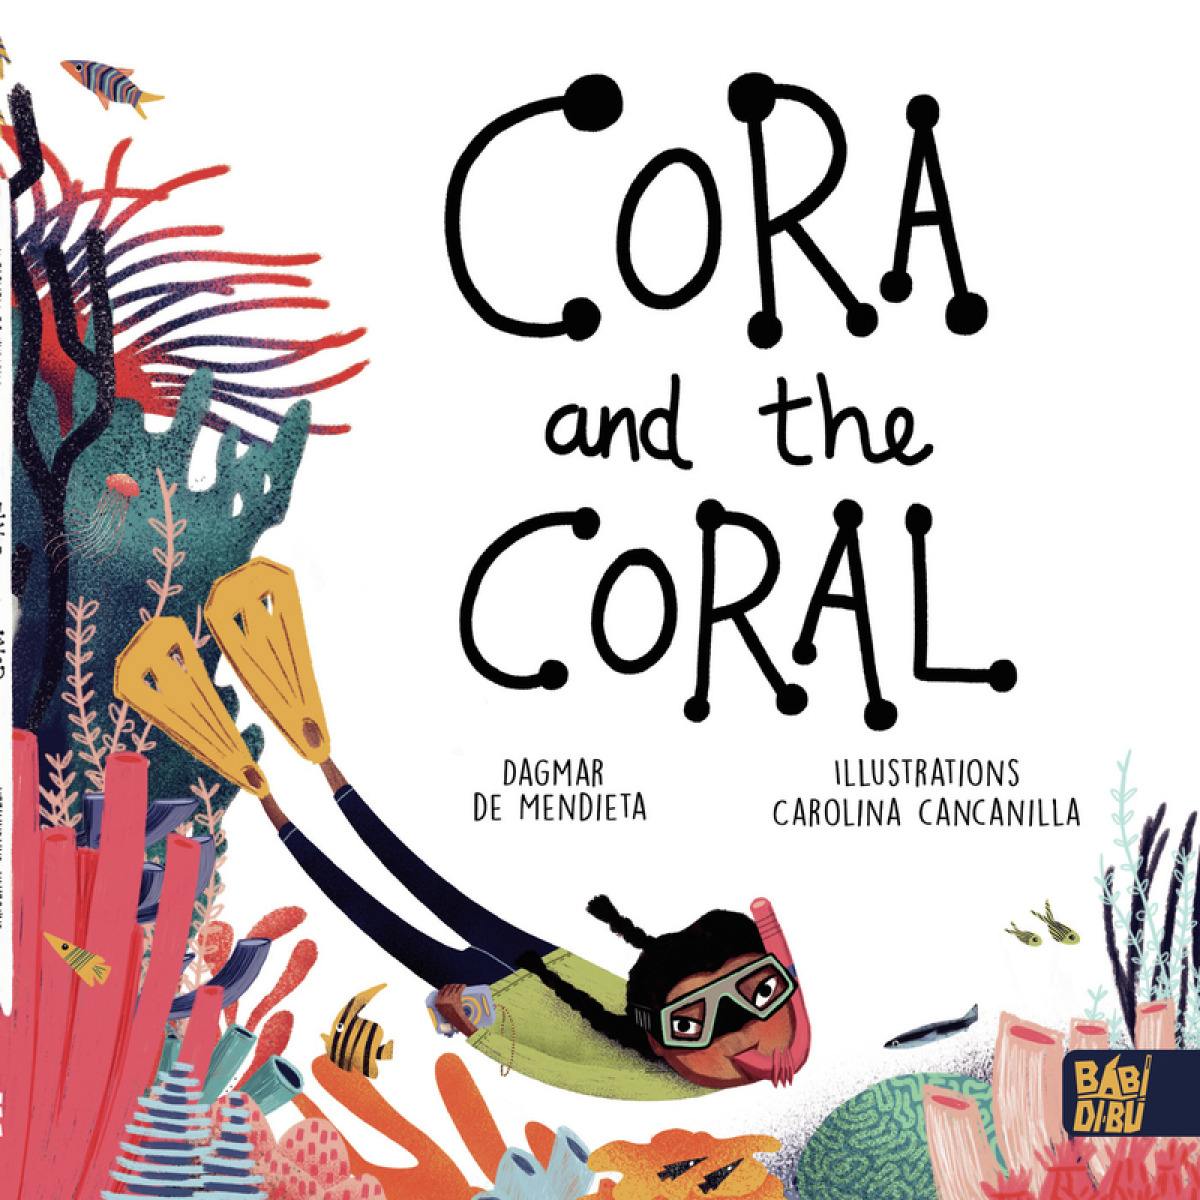 Cora and the coral